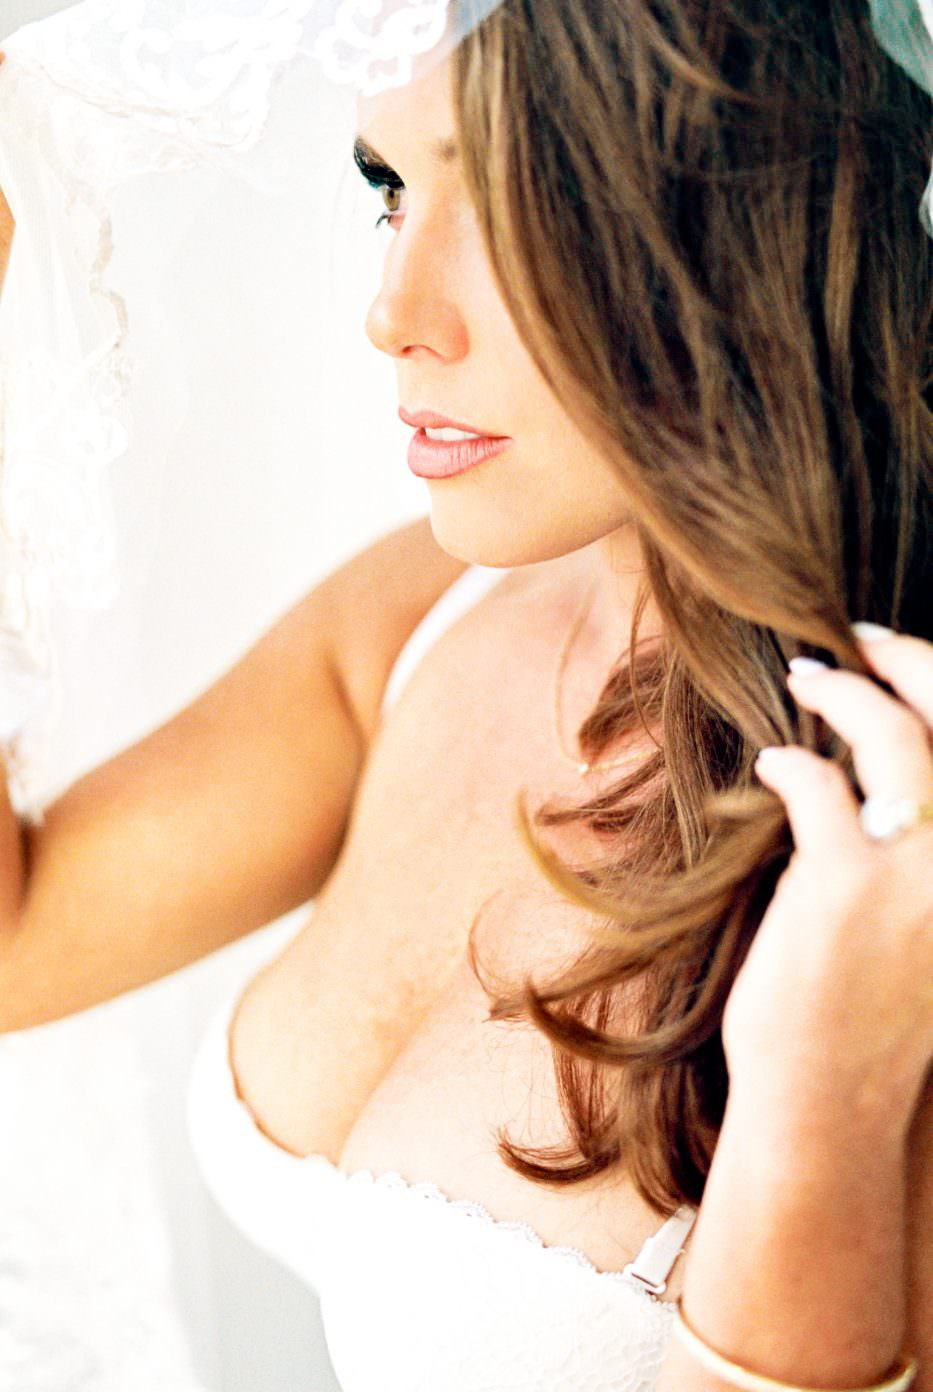 los-angeles-oc-bridal-boudoir-photography